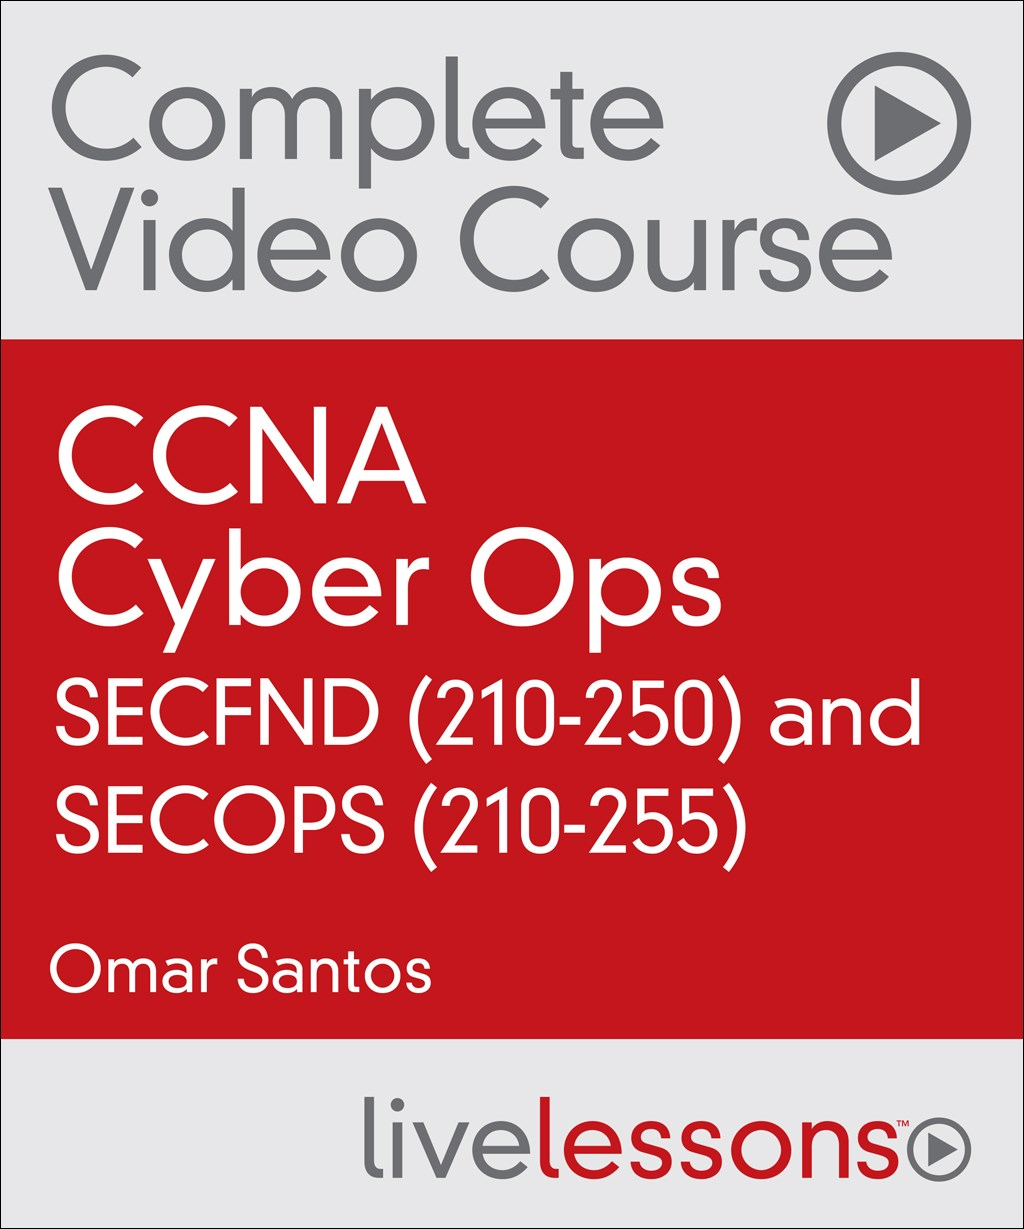 CCNA Cyber Ops SECFND (210-250) and SECOPS (210-255) Complete Video Course and Practice Tests